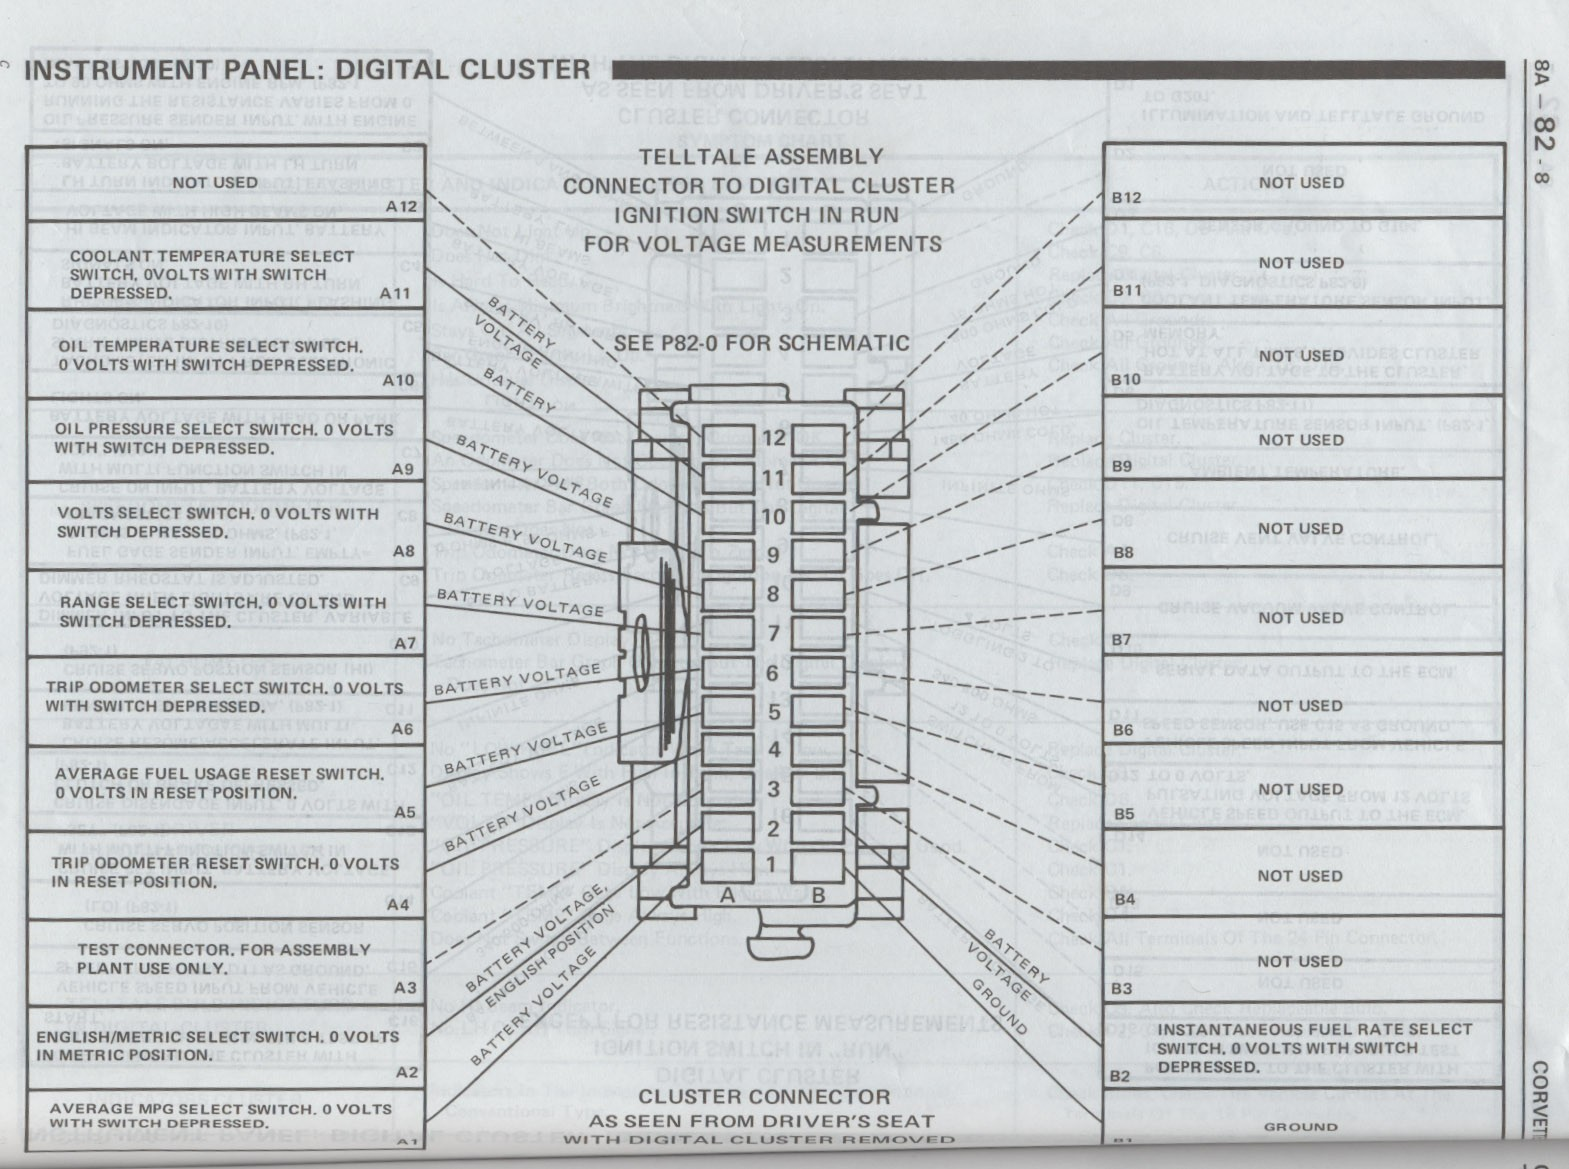 bose radio wiring diagram lh 7106  corvette bose radio wiring diagram wiring harness wiring 2006 gmc sierra bose radio wiring diagram corvette bose radio wiring diagram